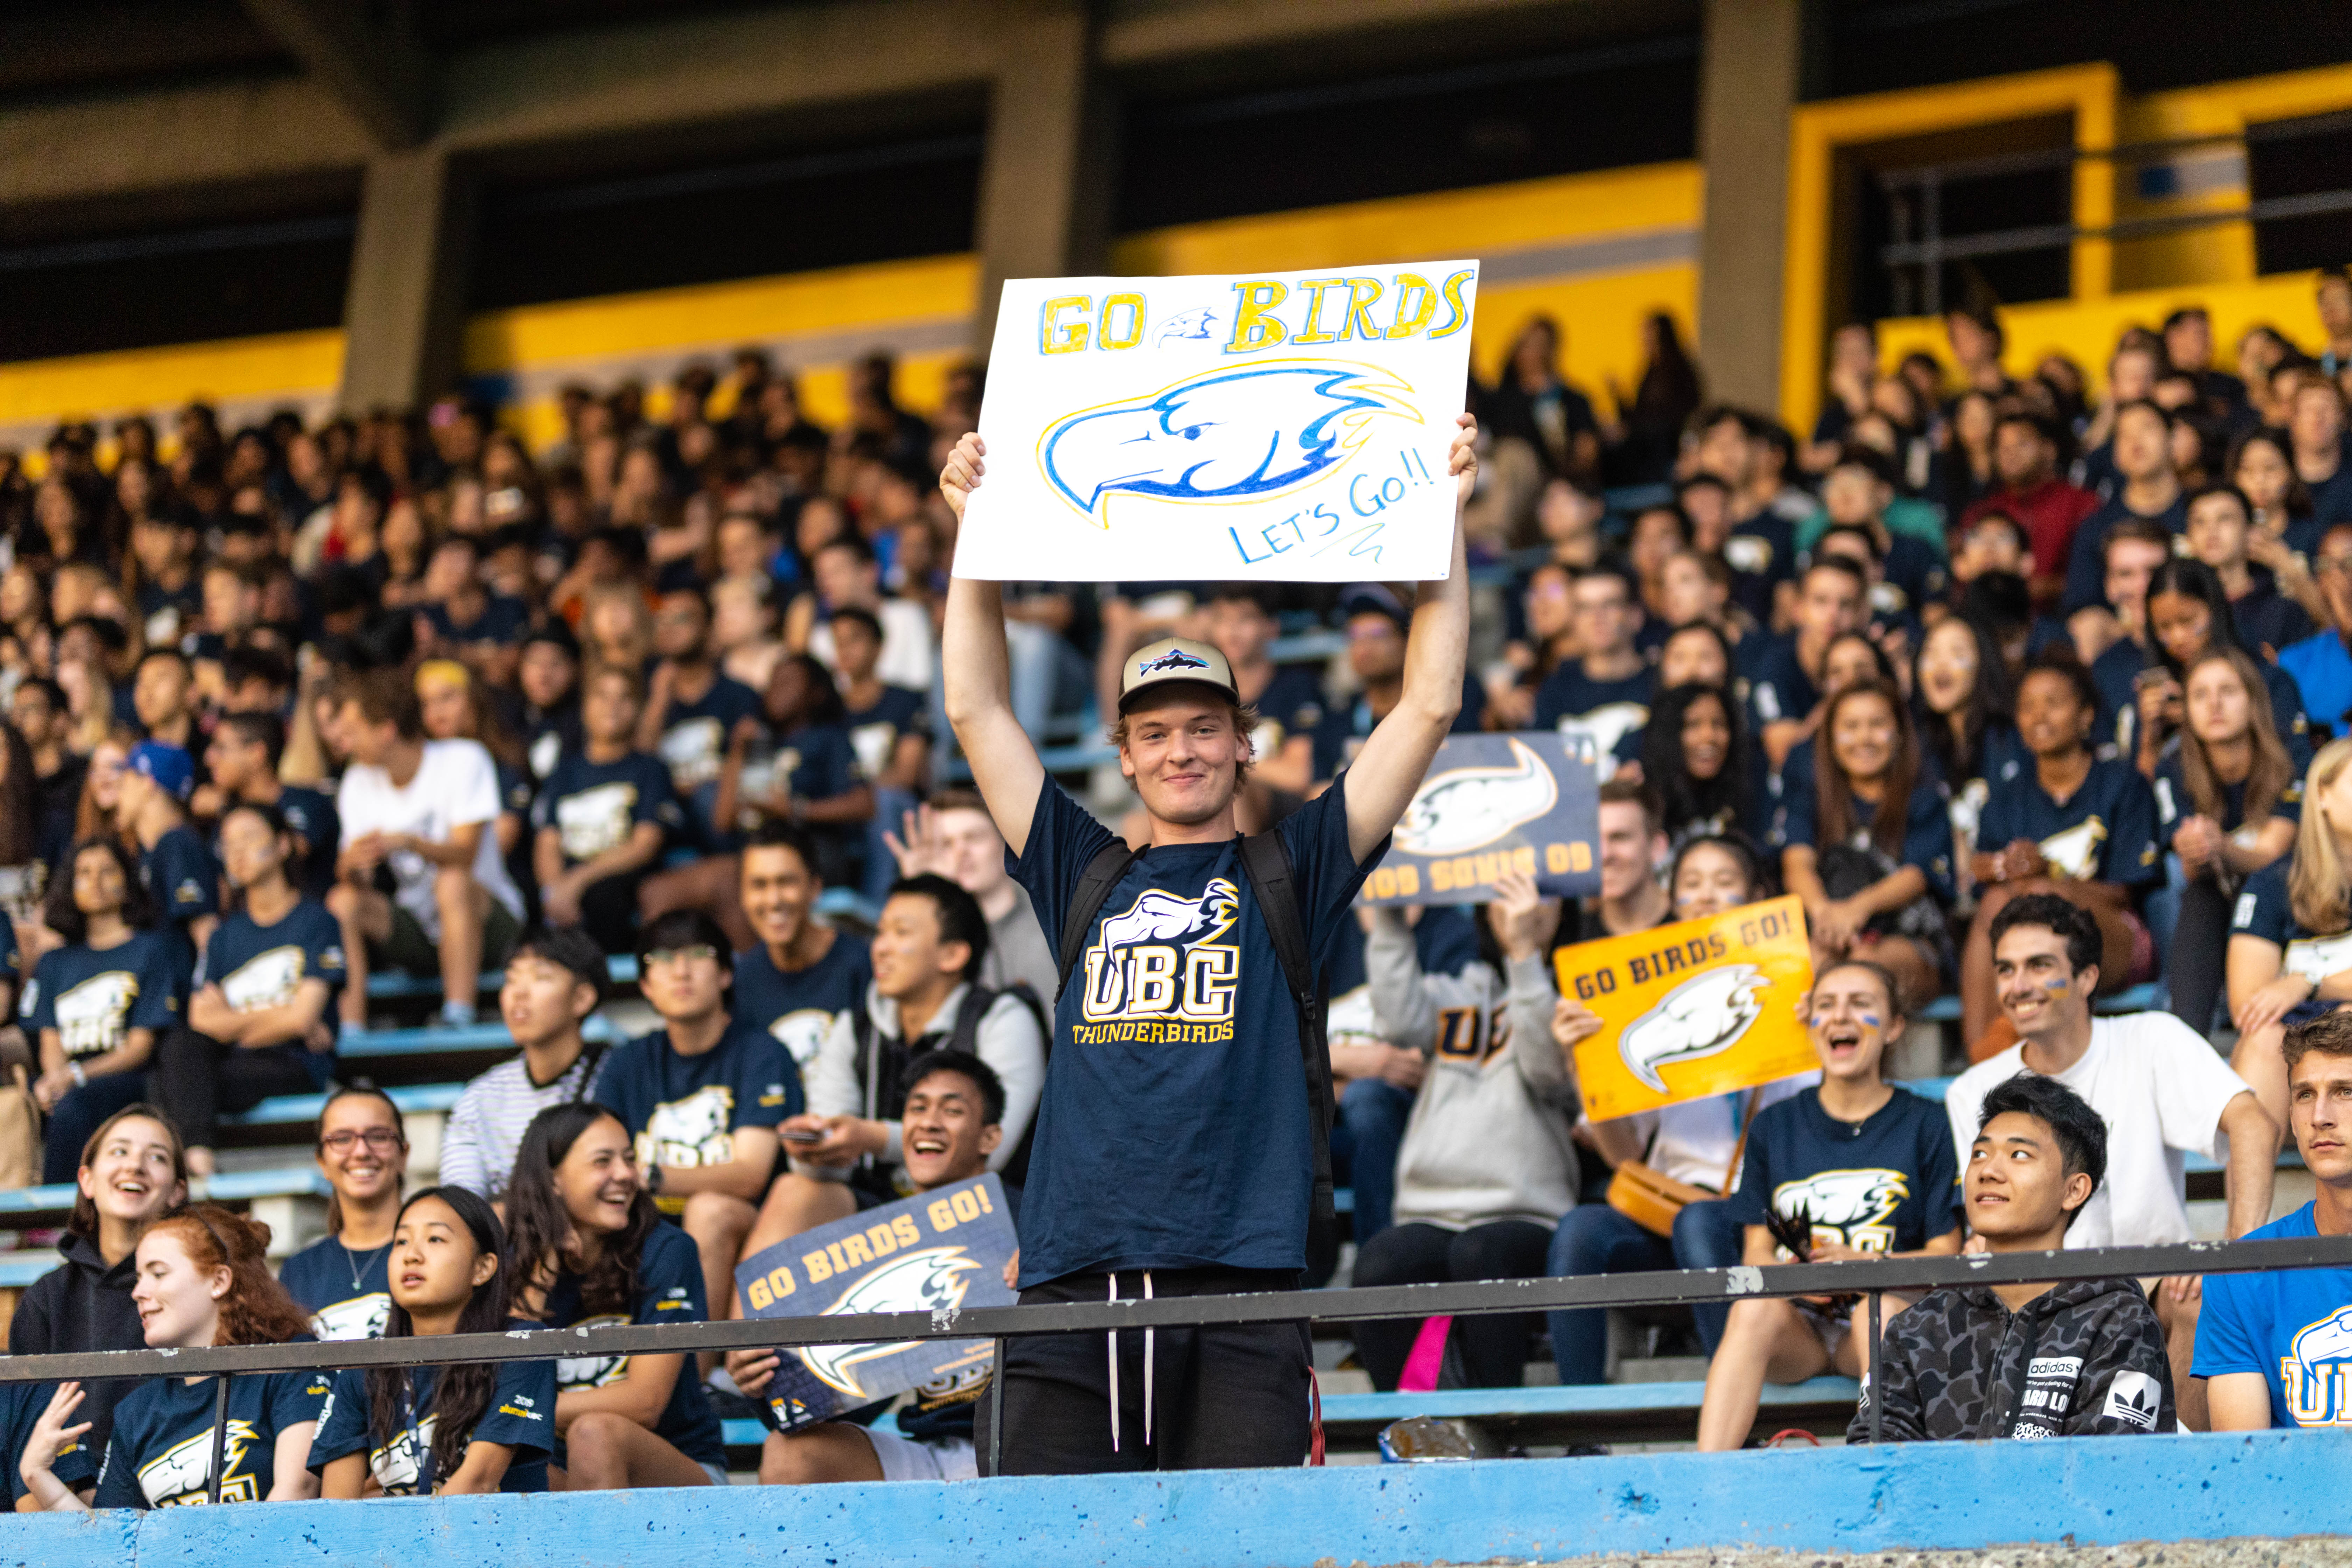 Fans were in abundance and showing some blue and gold pride